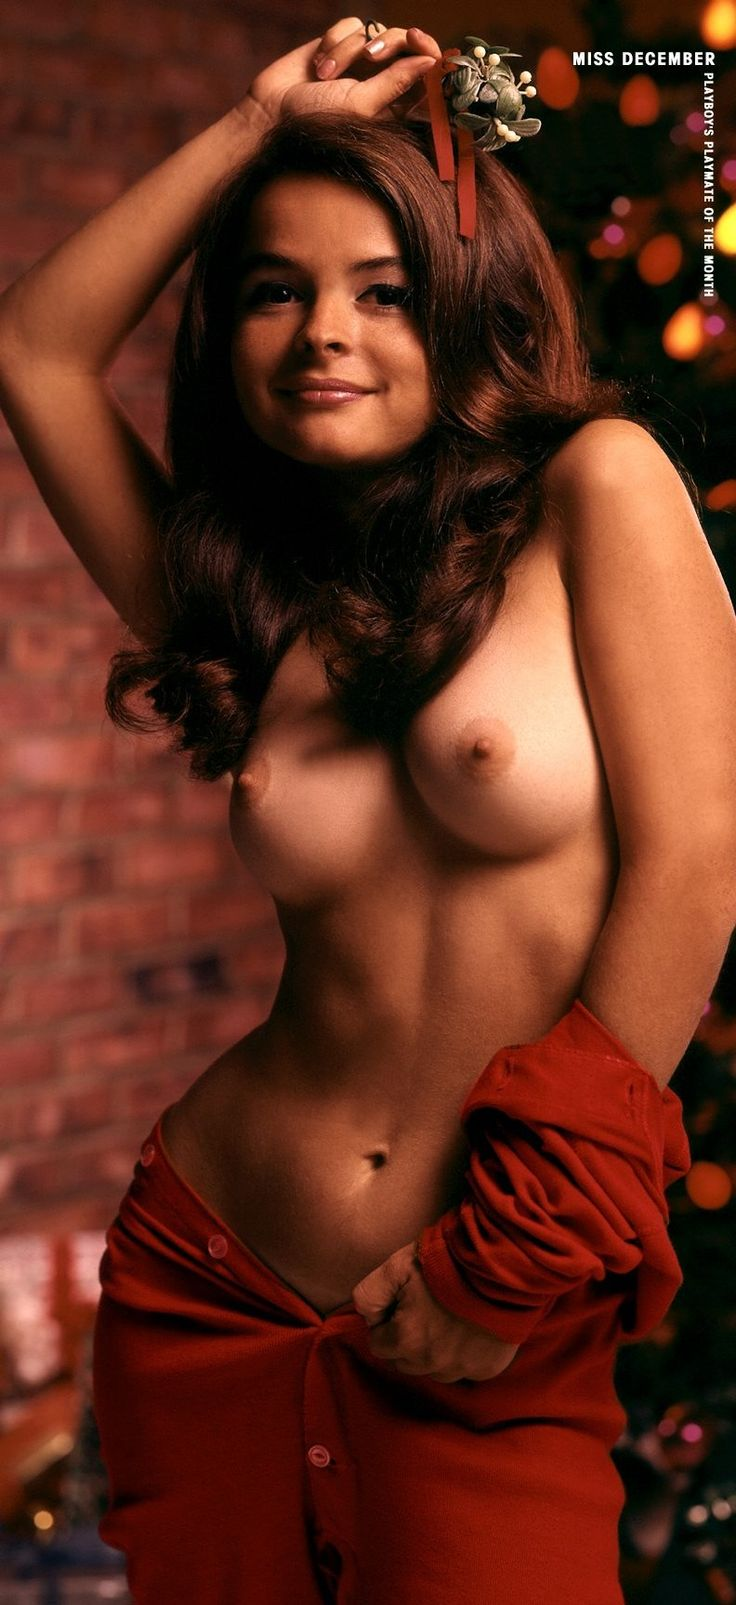 49 best the best of playboy playmates images on pinterest | playboy